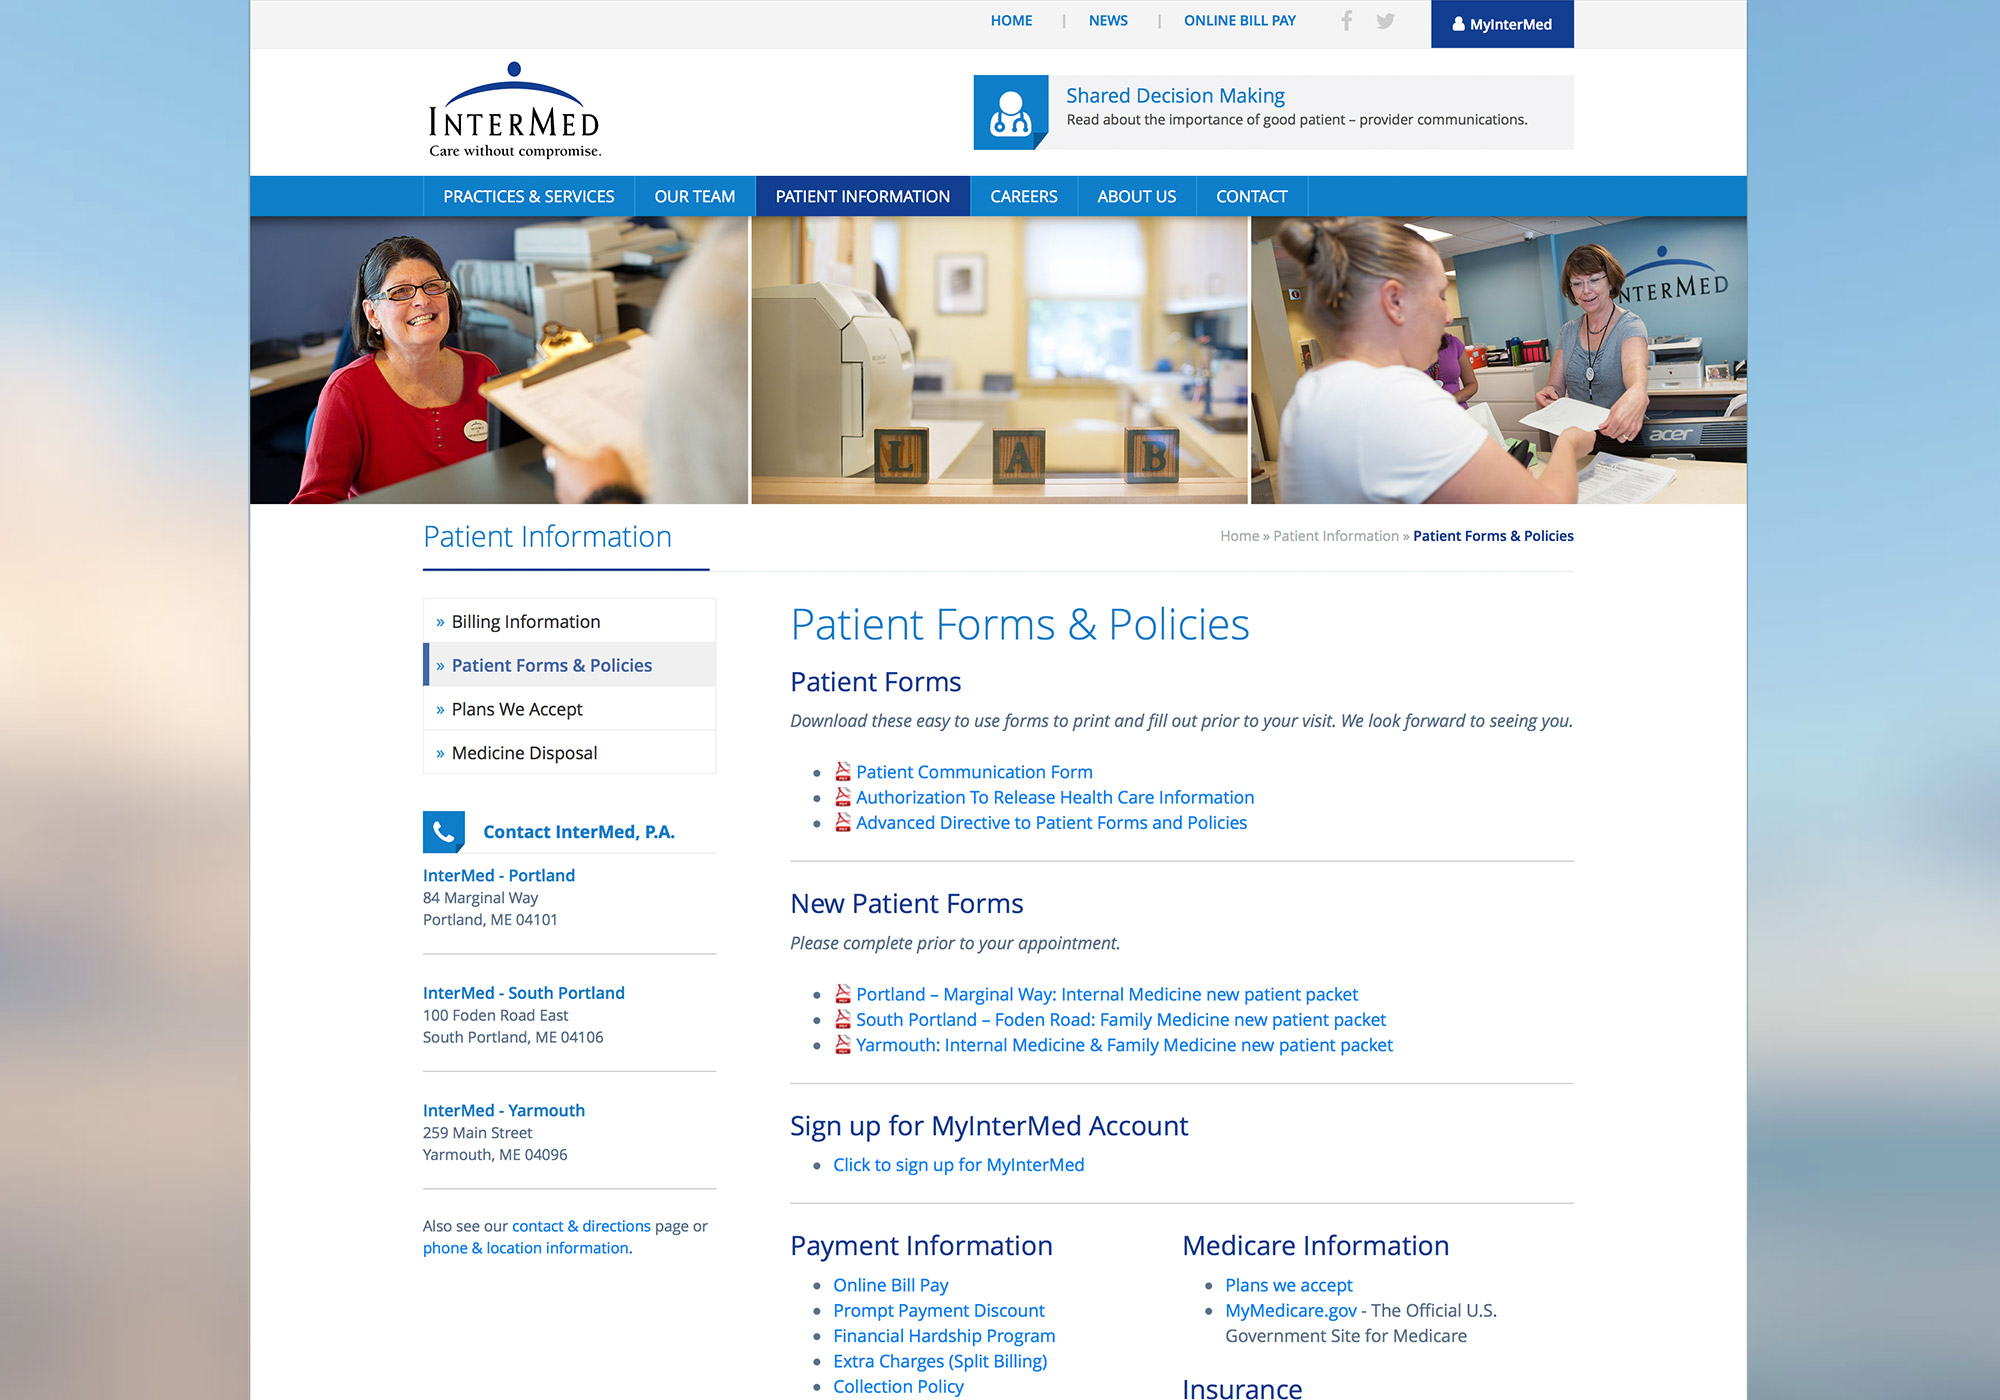 A new, custom, responsive website for the InterMed, in Portland, Maine by craft website design company SlickFish Studios, in the Old Port of Portland, Maine.